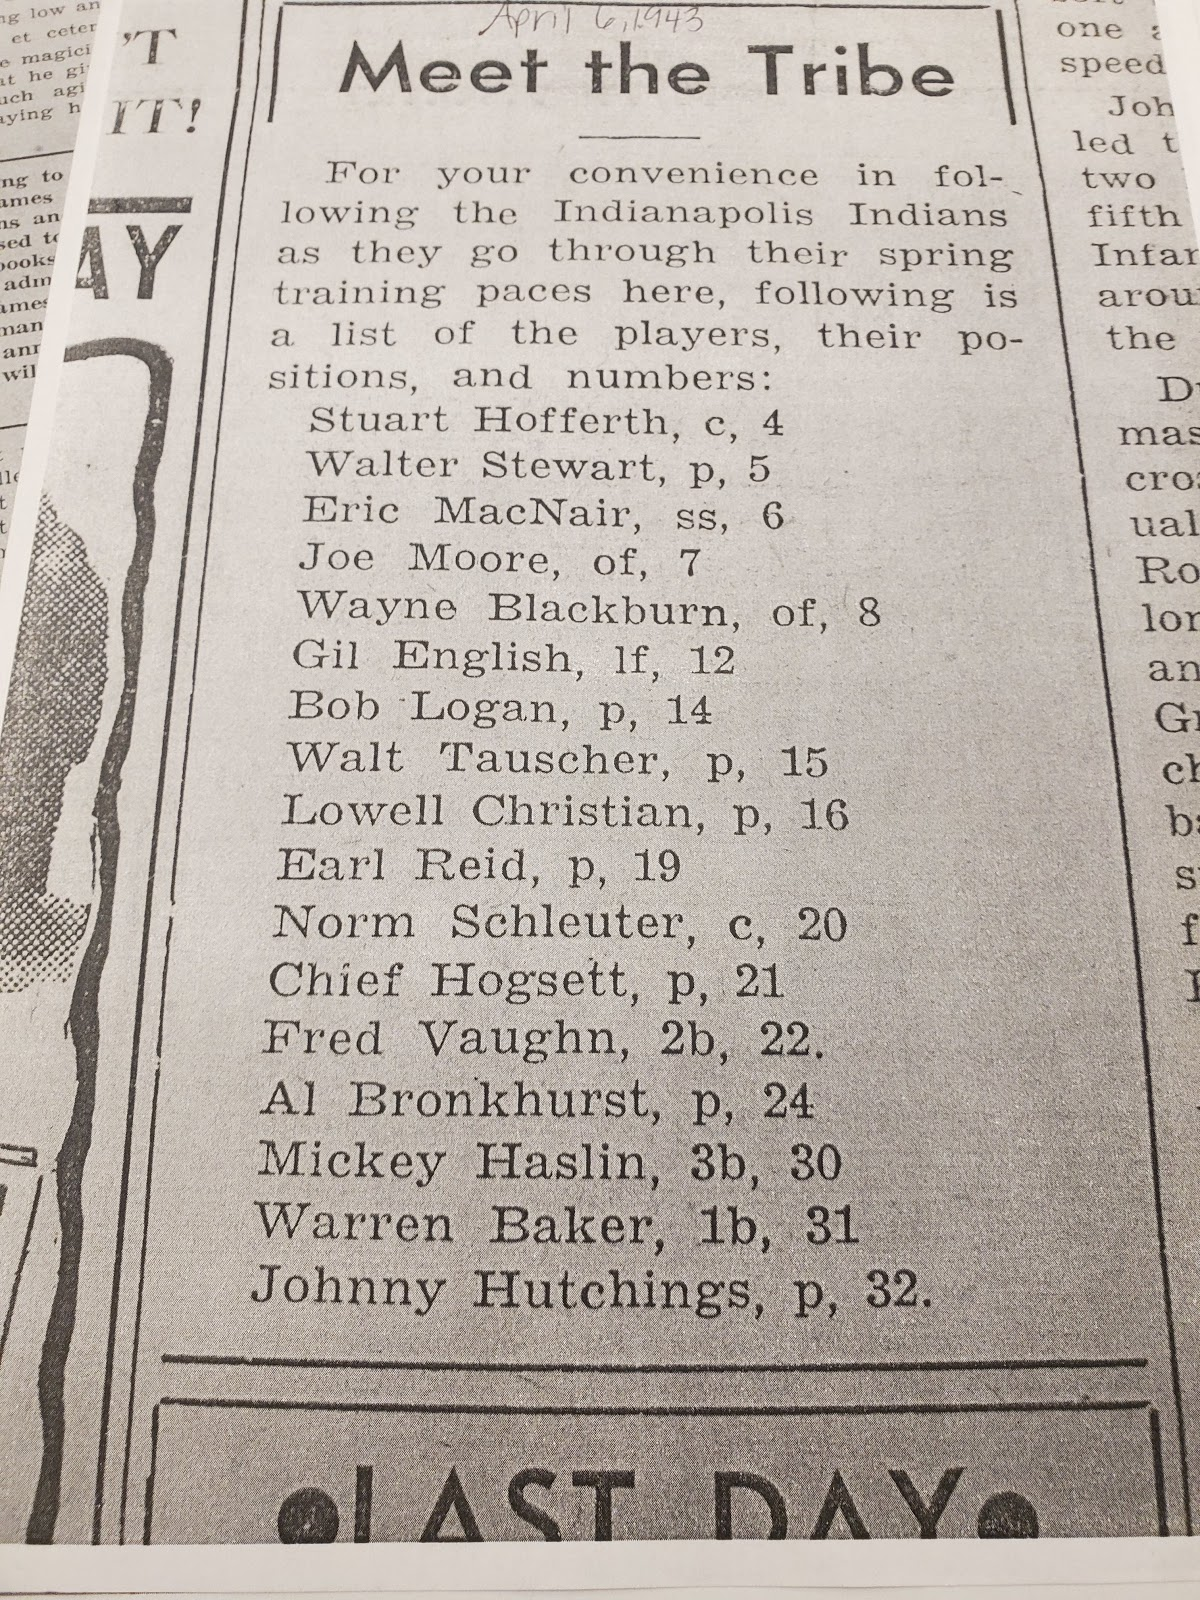 IDS copy of Indianapolis Indians 1943 Roster